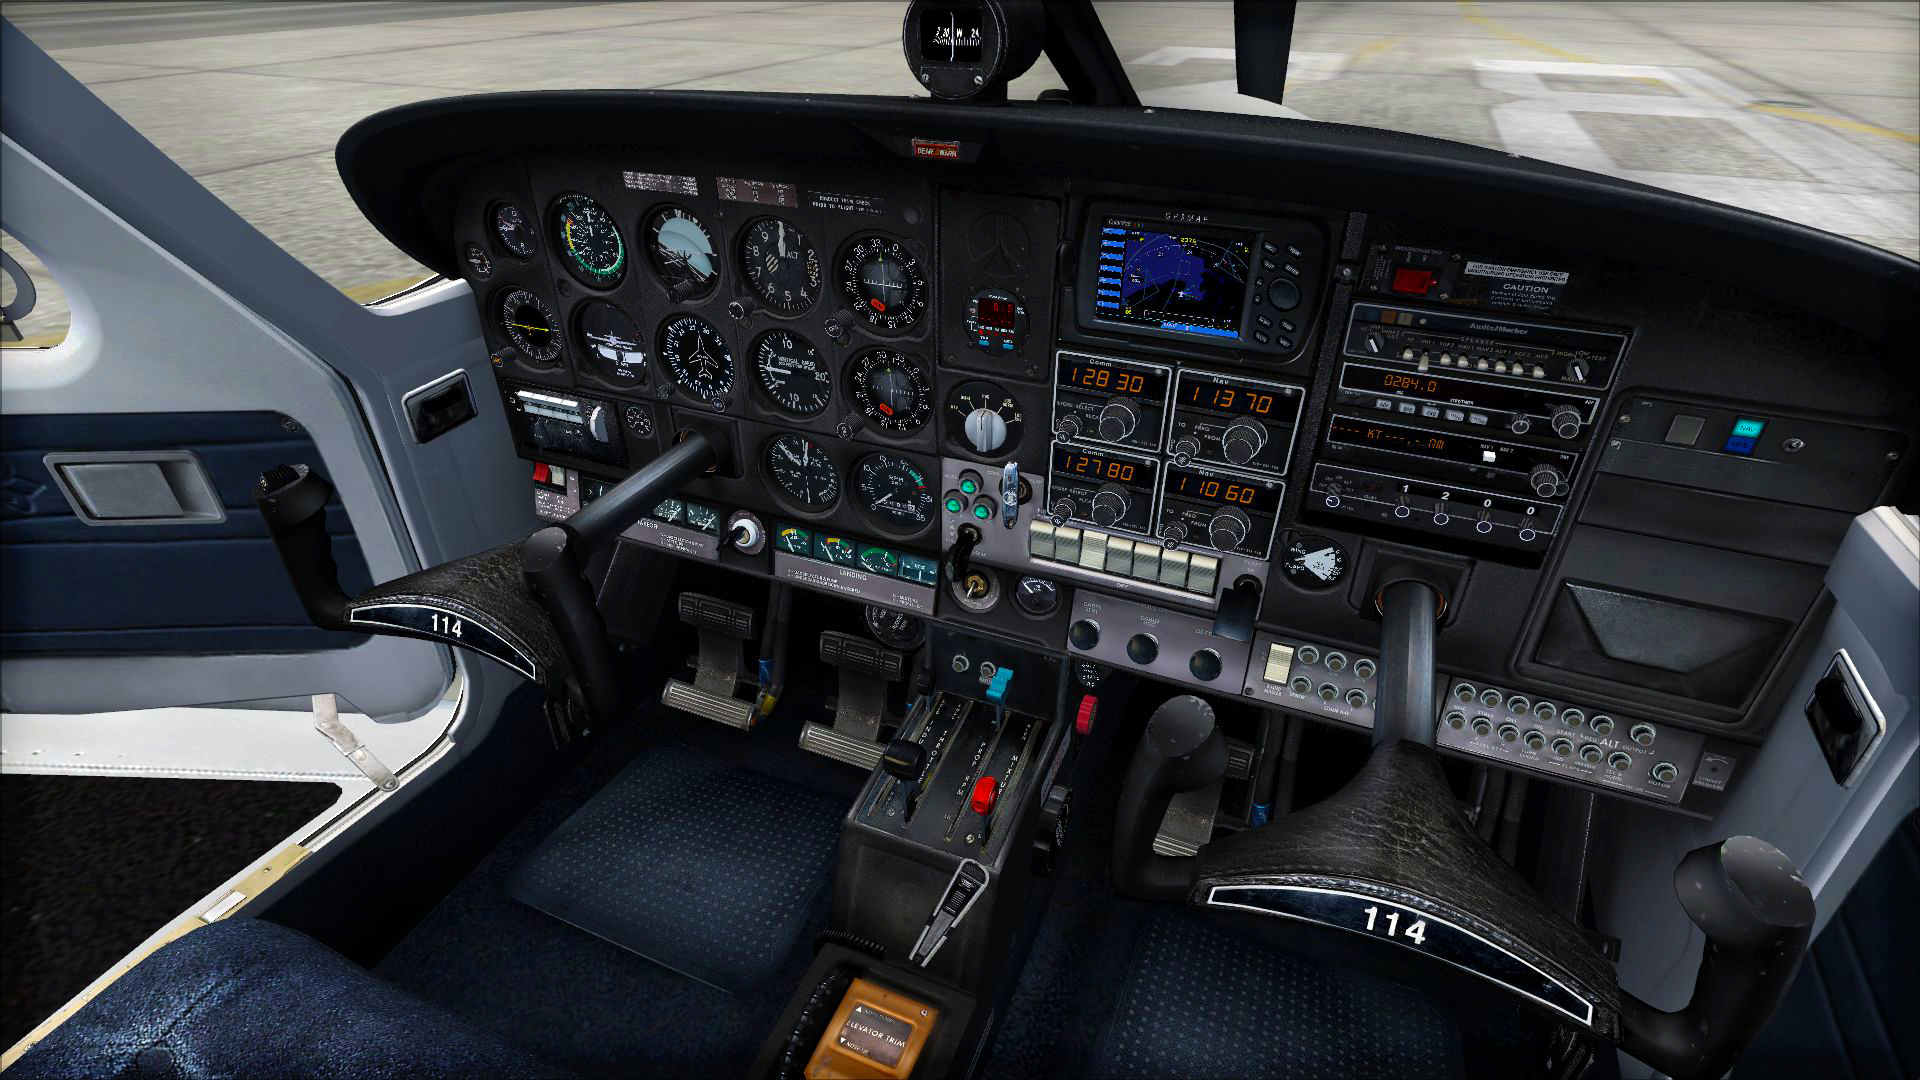 Rockwell AC11 Commander 114™ out now for FSX: Steam Edition